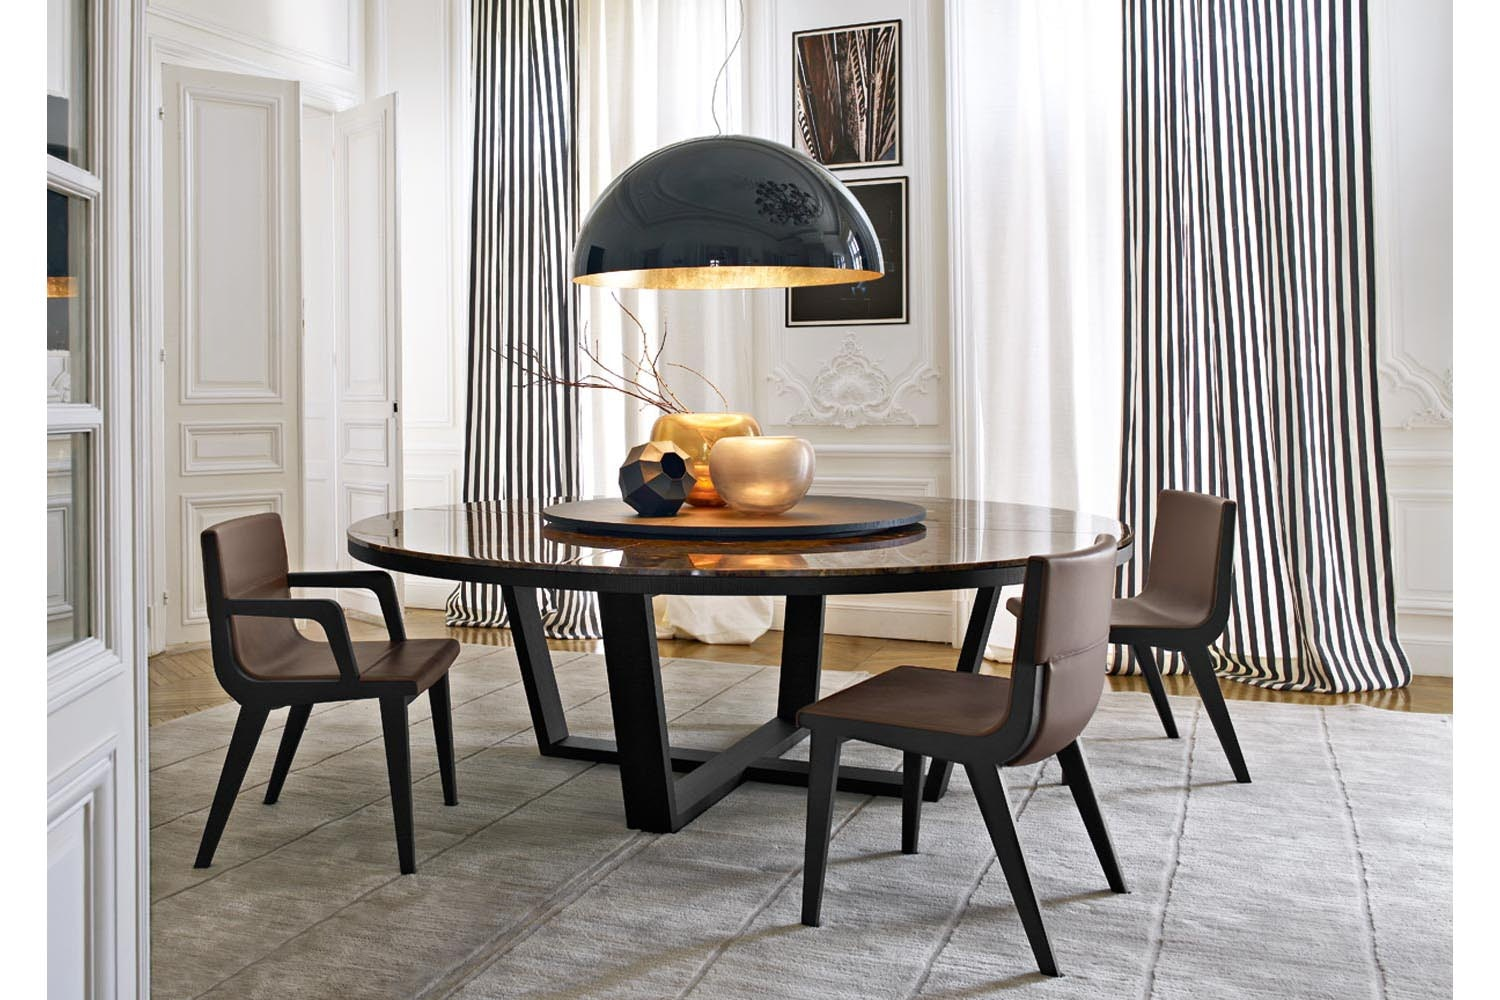 Xilos 2012 Table by Antonio Citterio for Maxalto